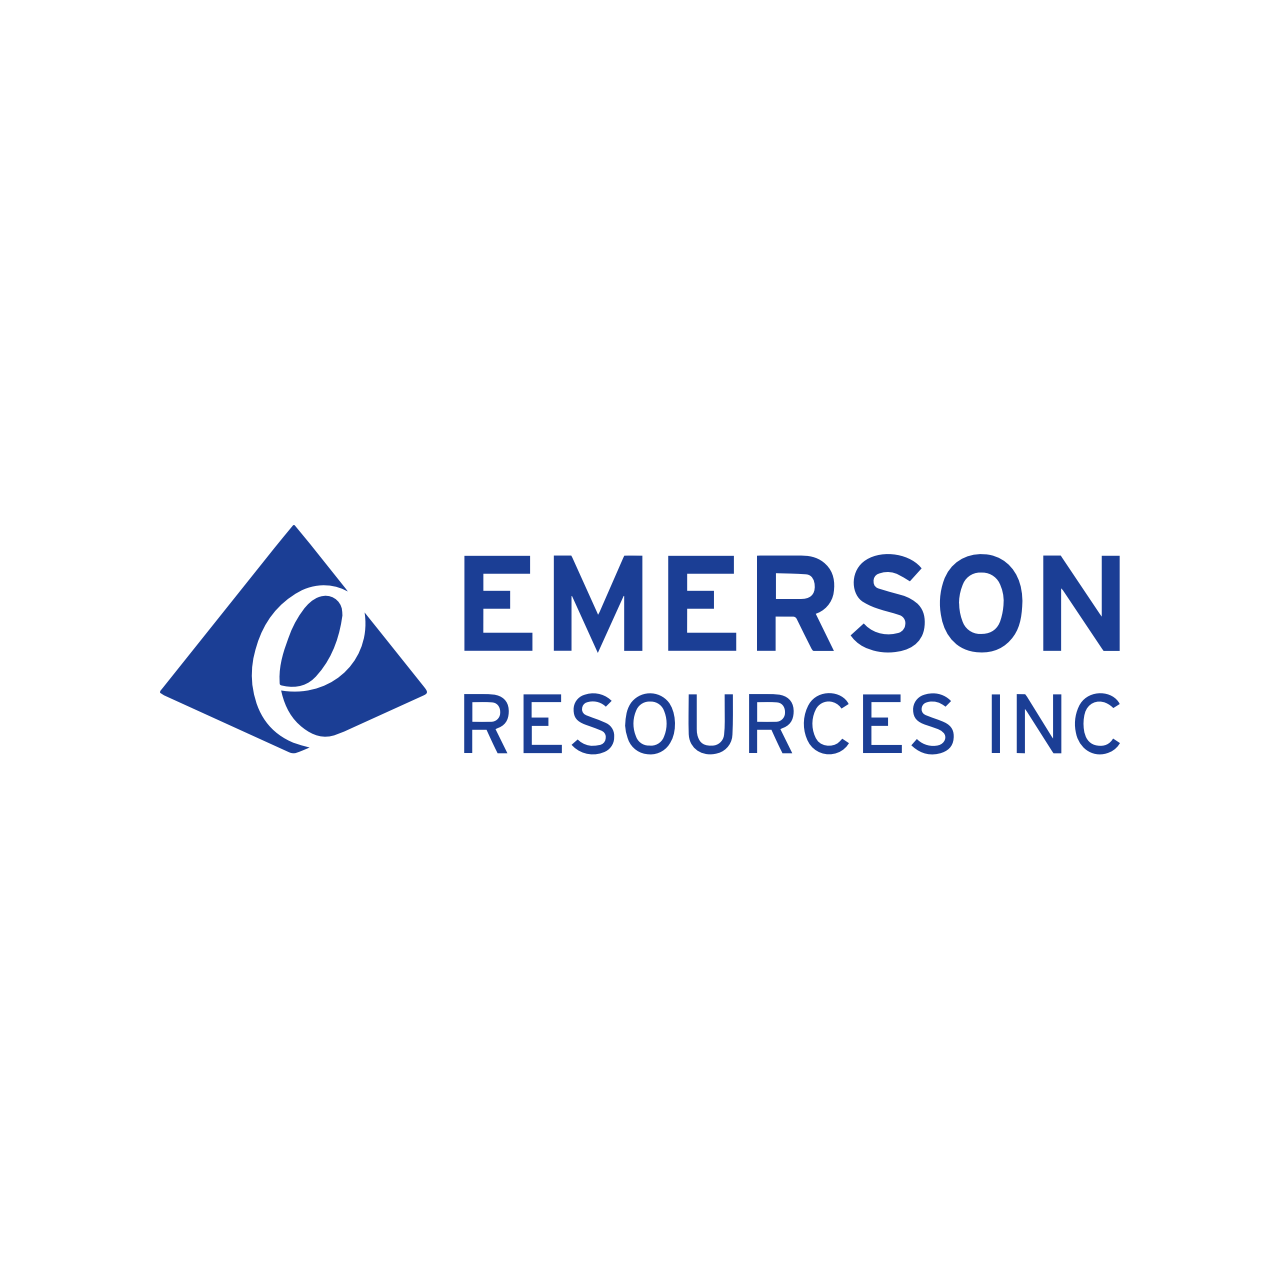 Emerson Resources Inc